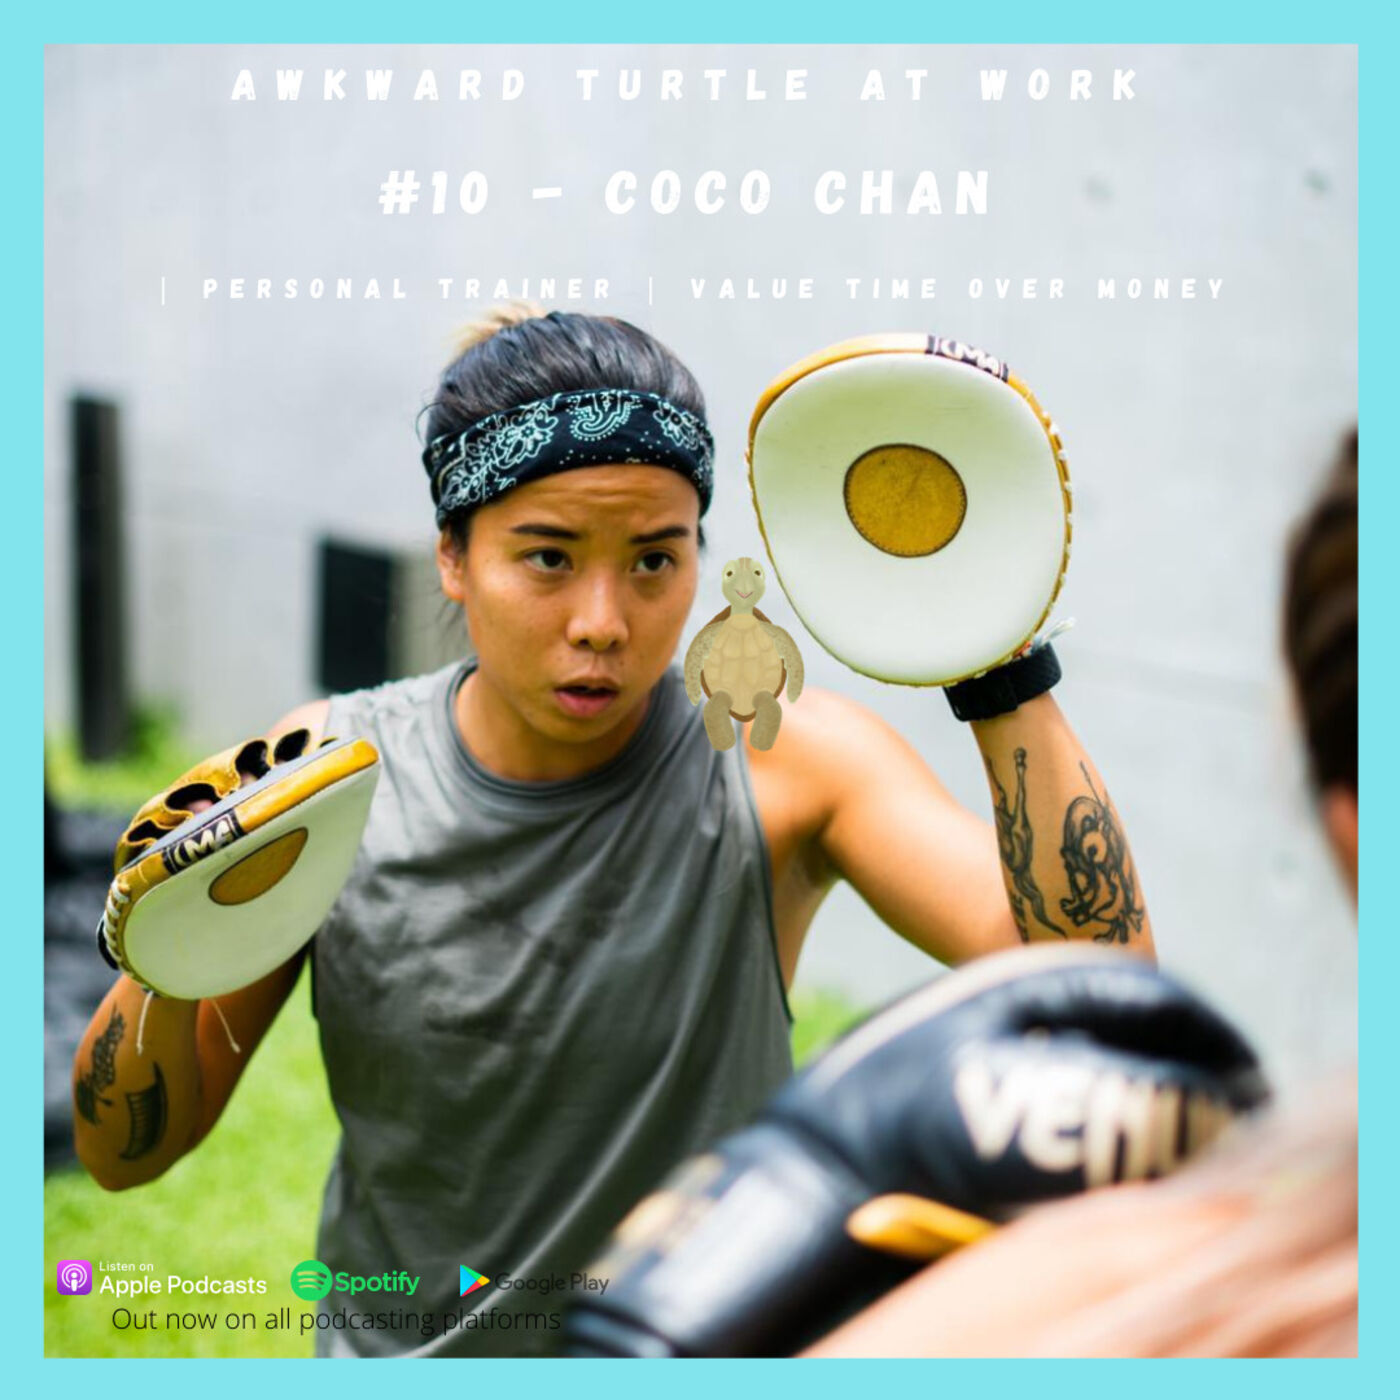 #10 - Coco Chan | Personal Trainer | Value time over money